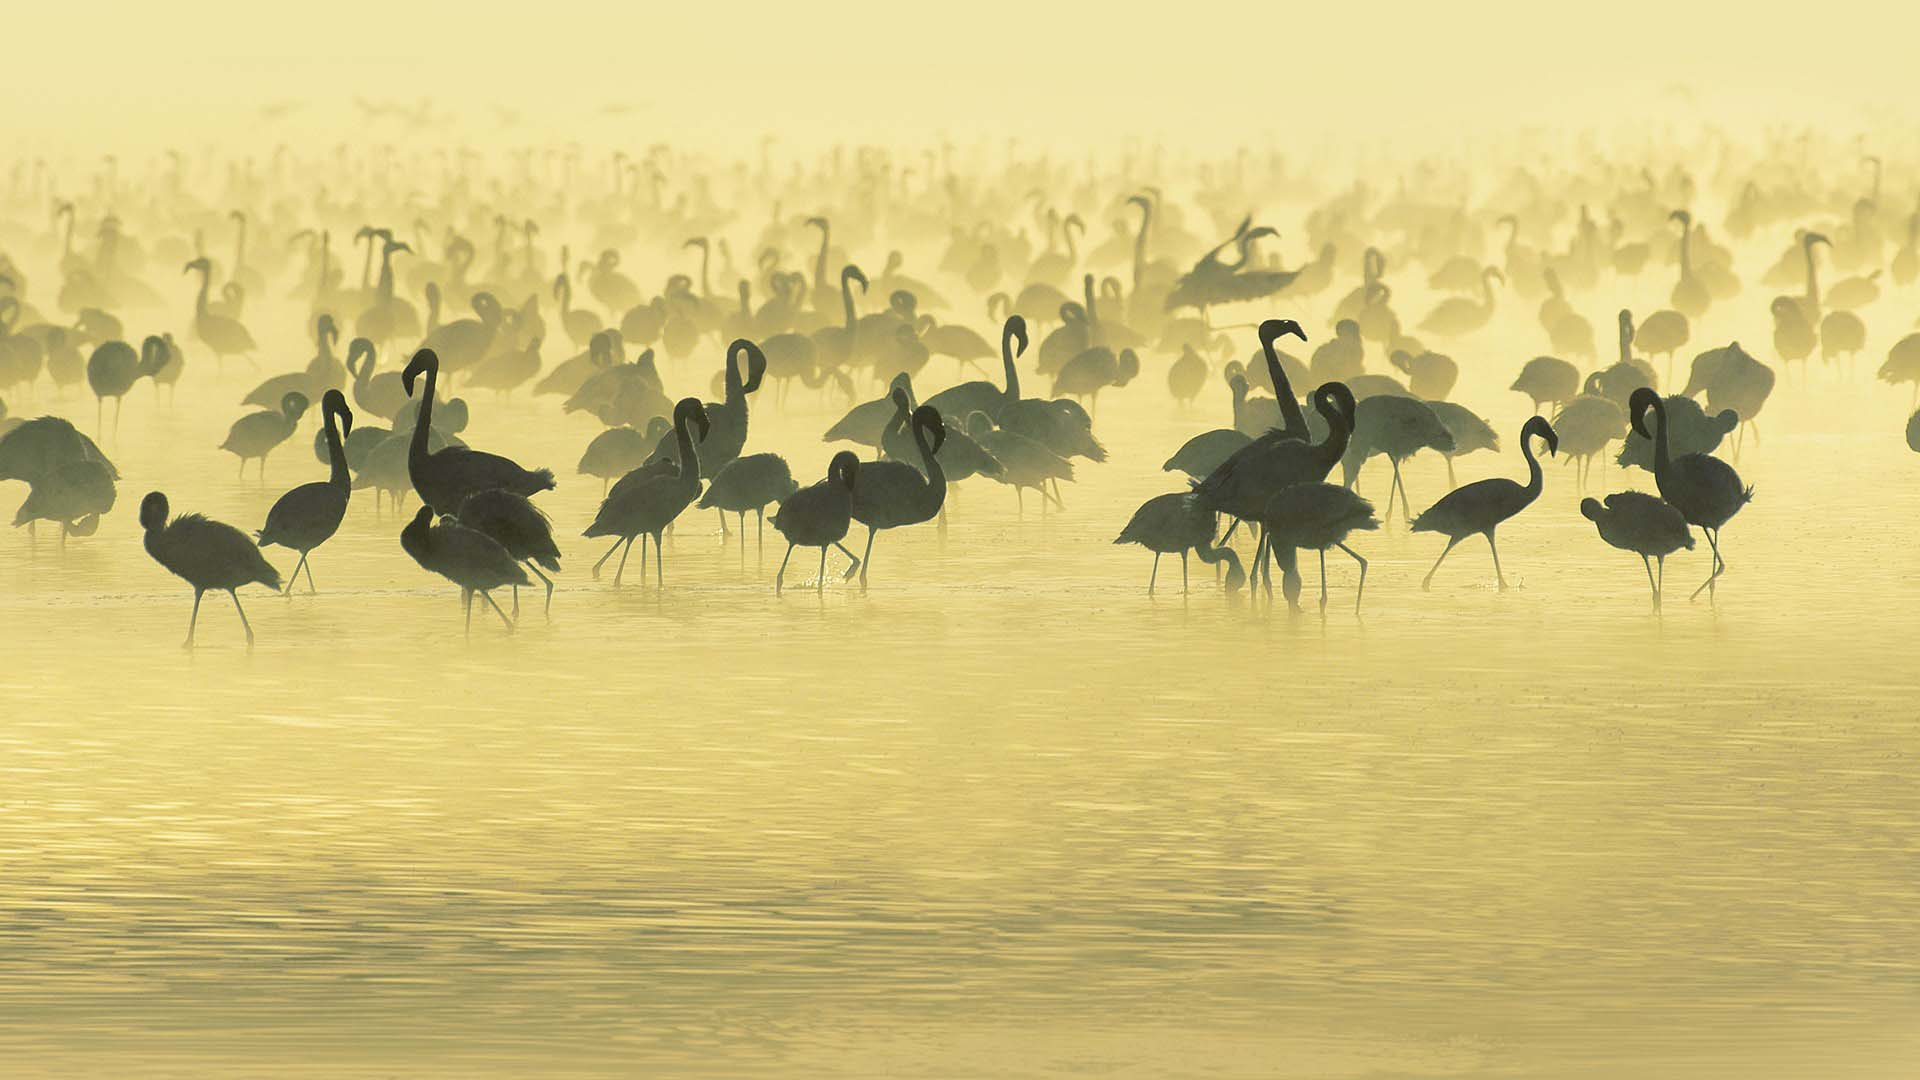 Birds-and-Animals-South-Africa-HD-Background-Animal-Birds-Flamingos-South-Africa-River-HD-Wallpa-wallpaper-wp3403252